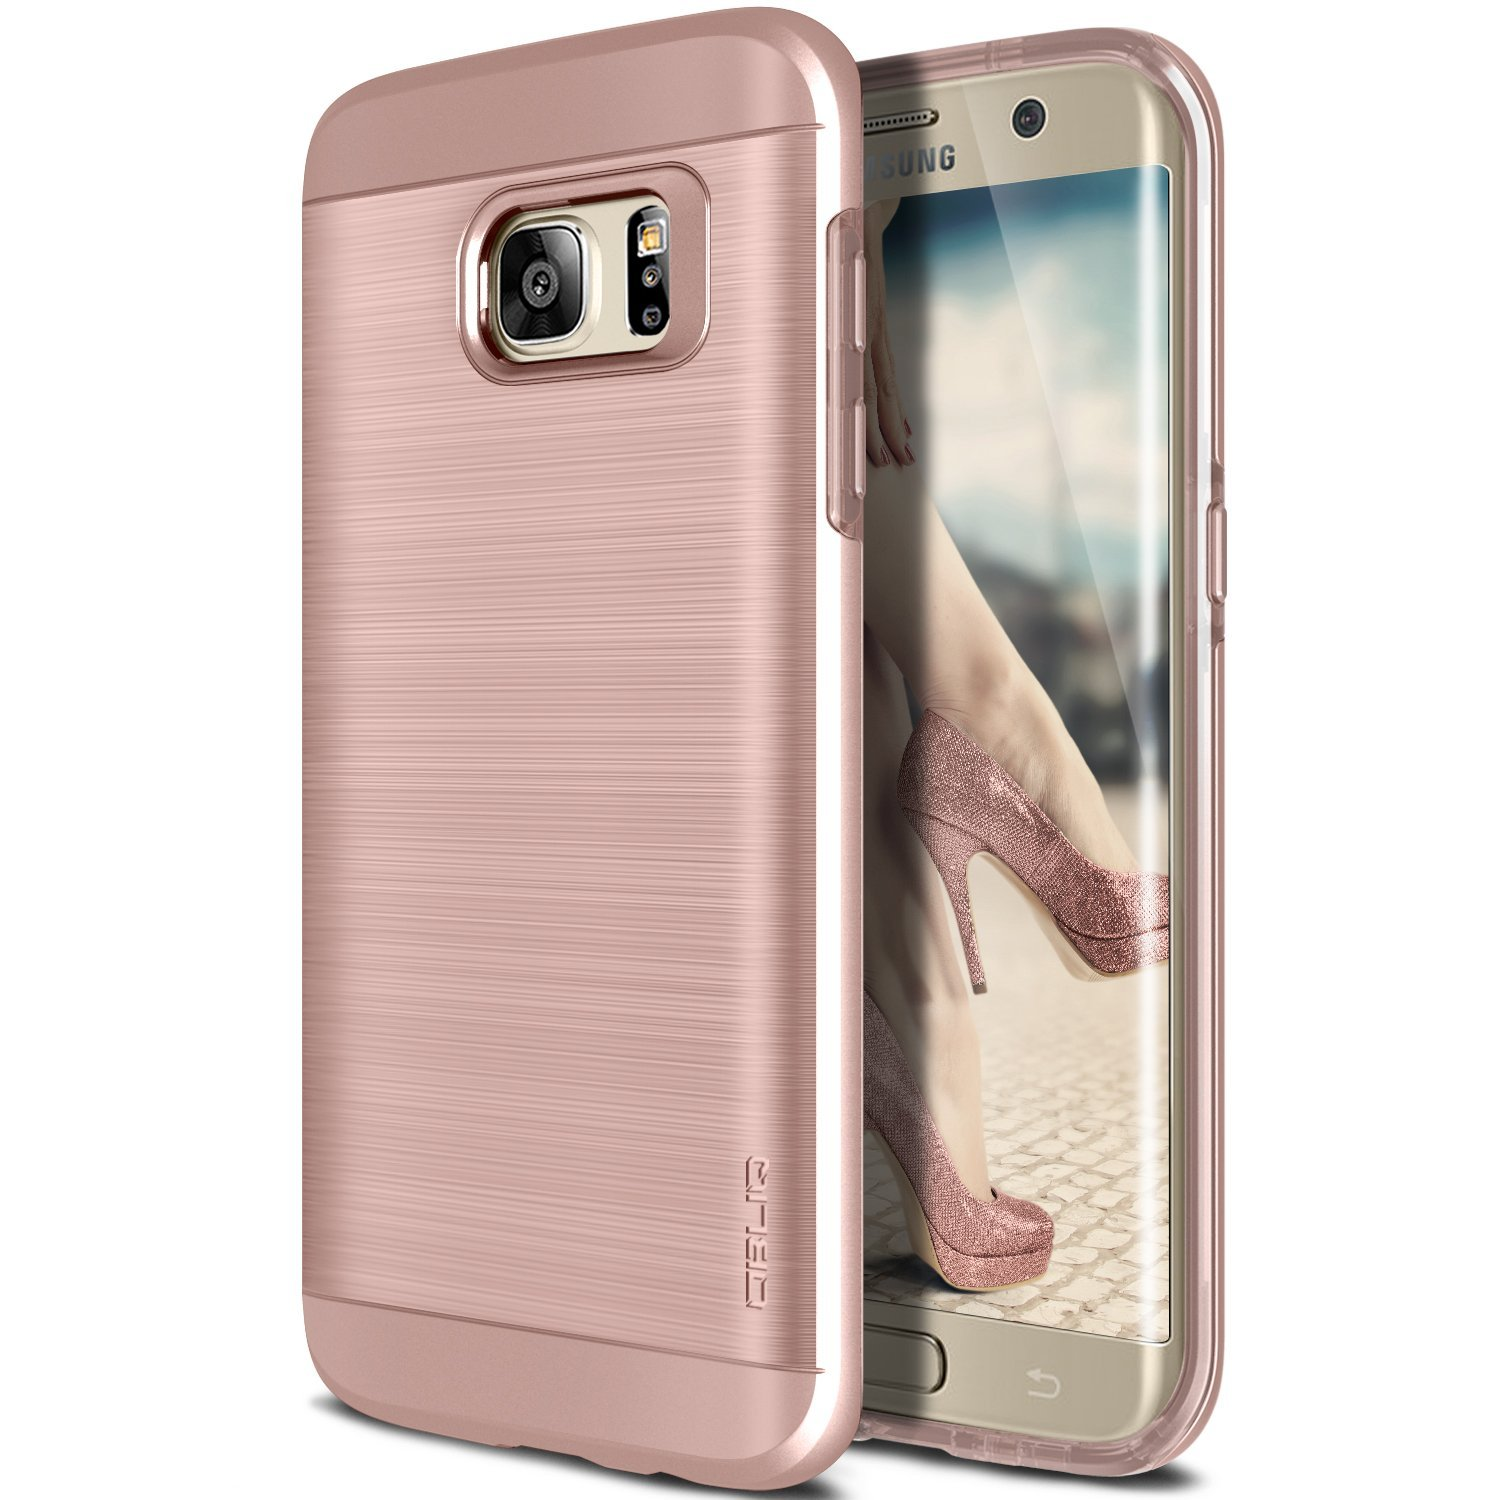 Top 15 Best Samsung Galaxy S7 Edge Cases And Covers